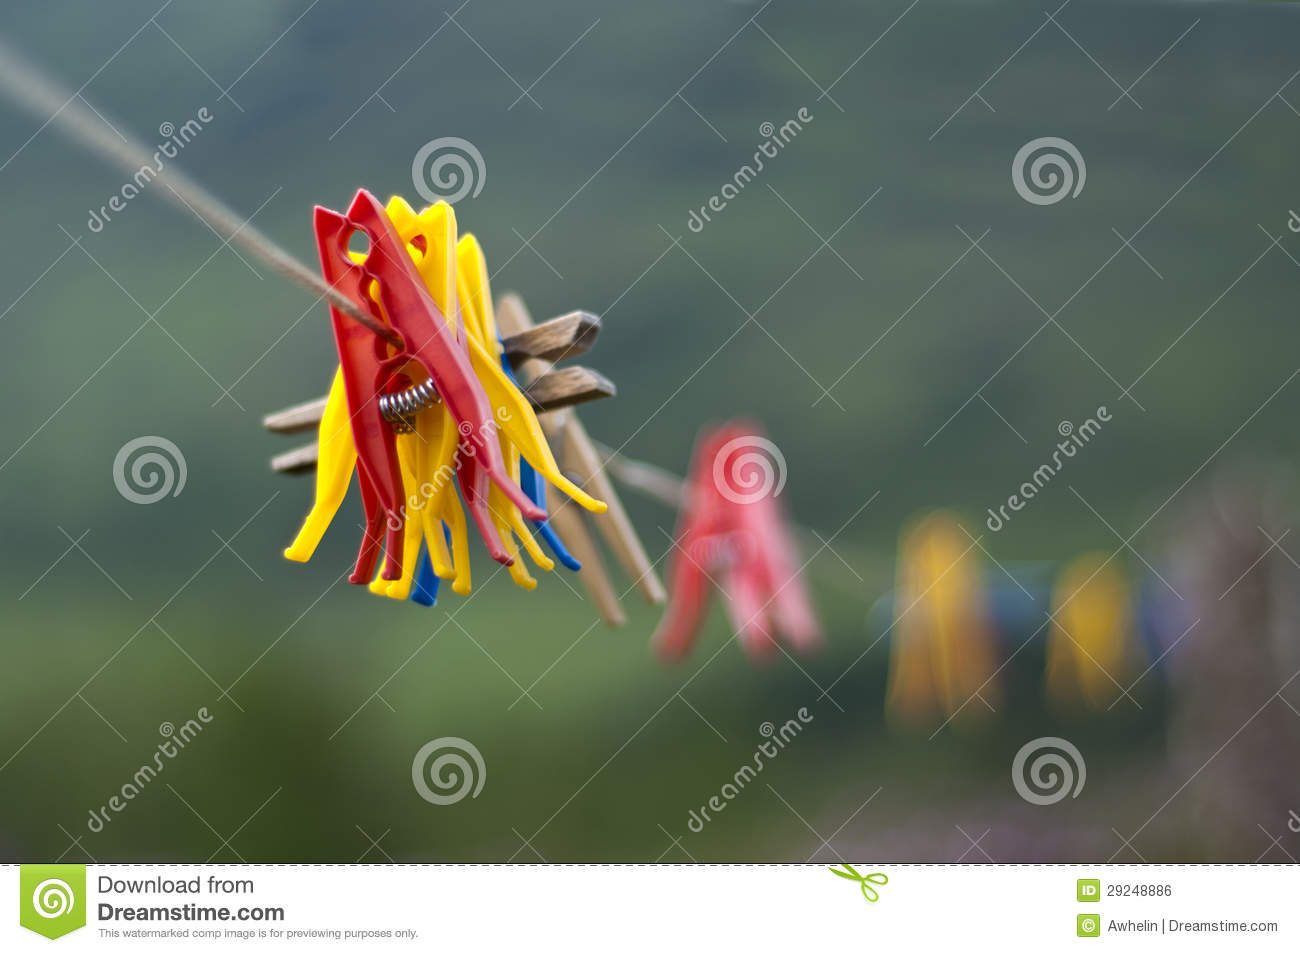 Download Pegs foto de stock. Imagem de higiene, clothesline, azul - 29248886